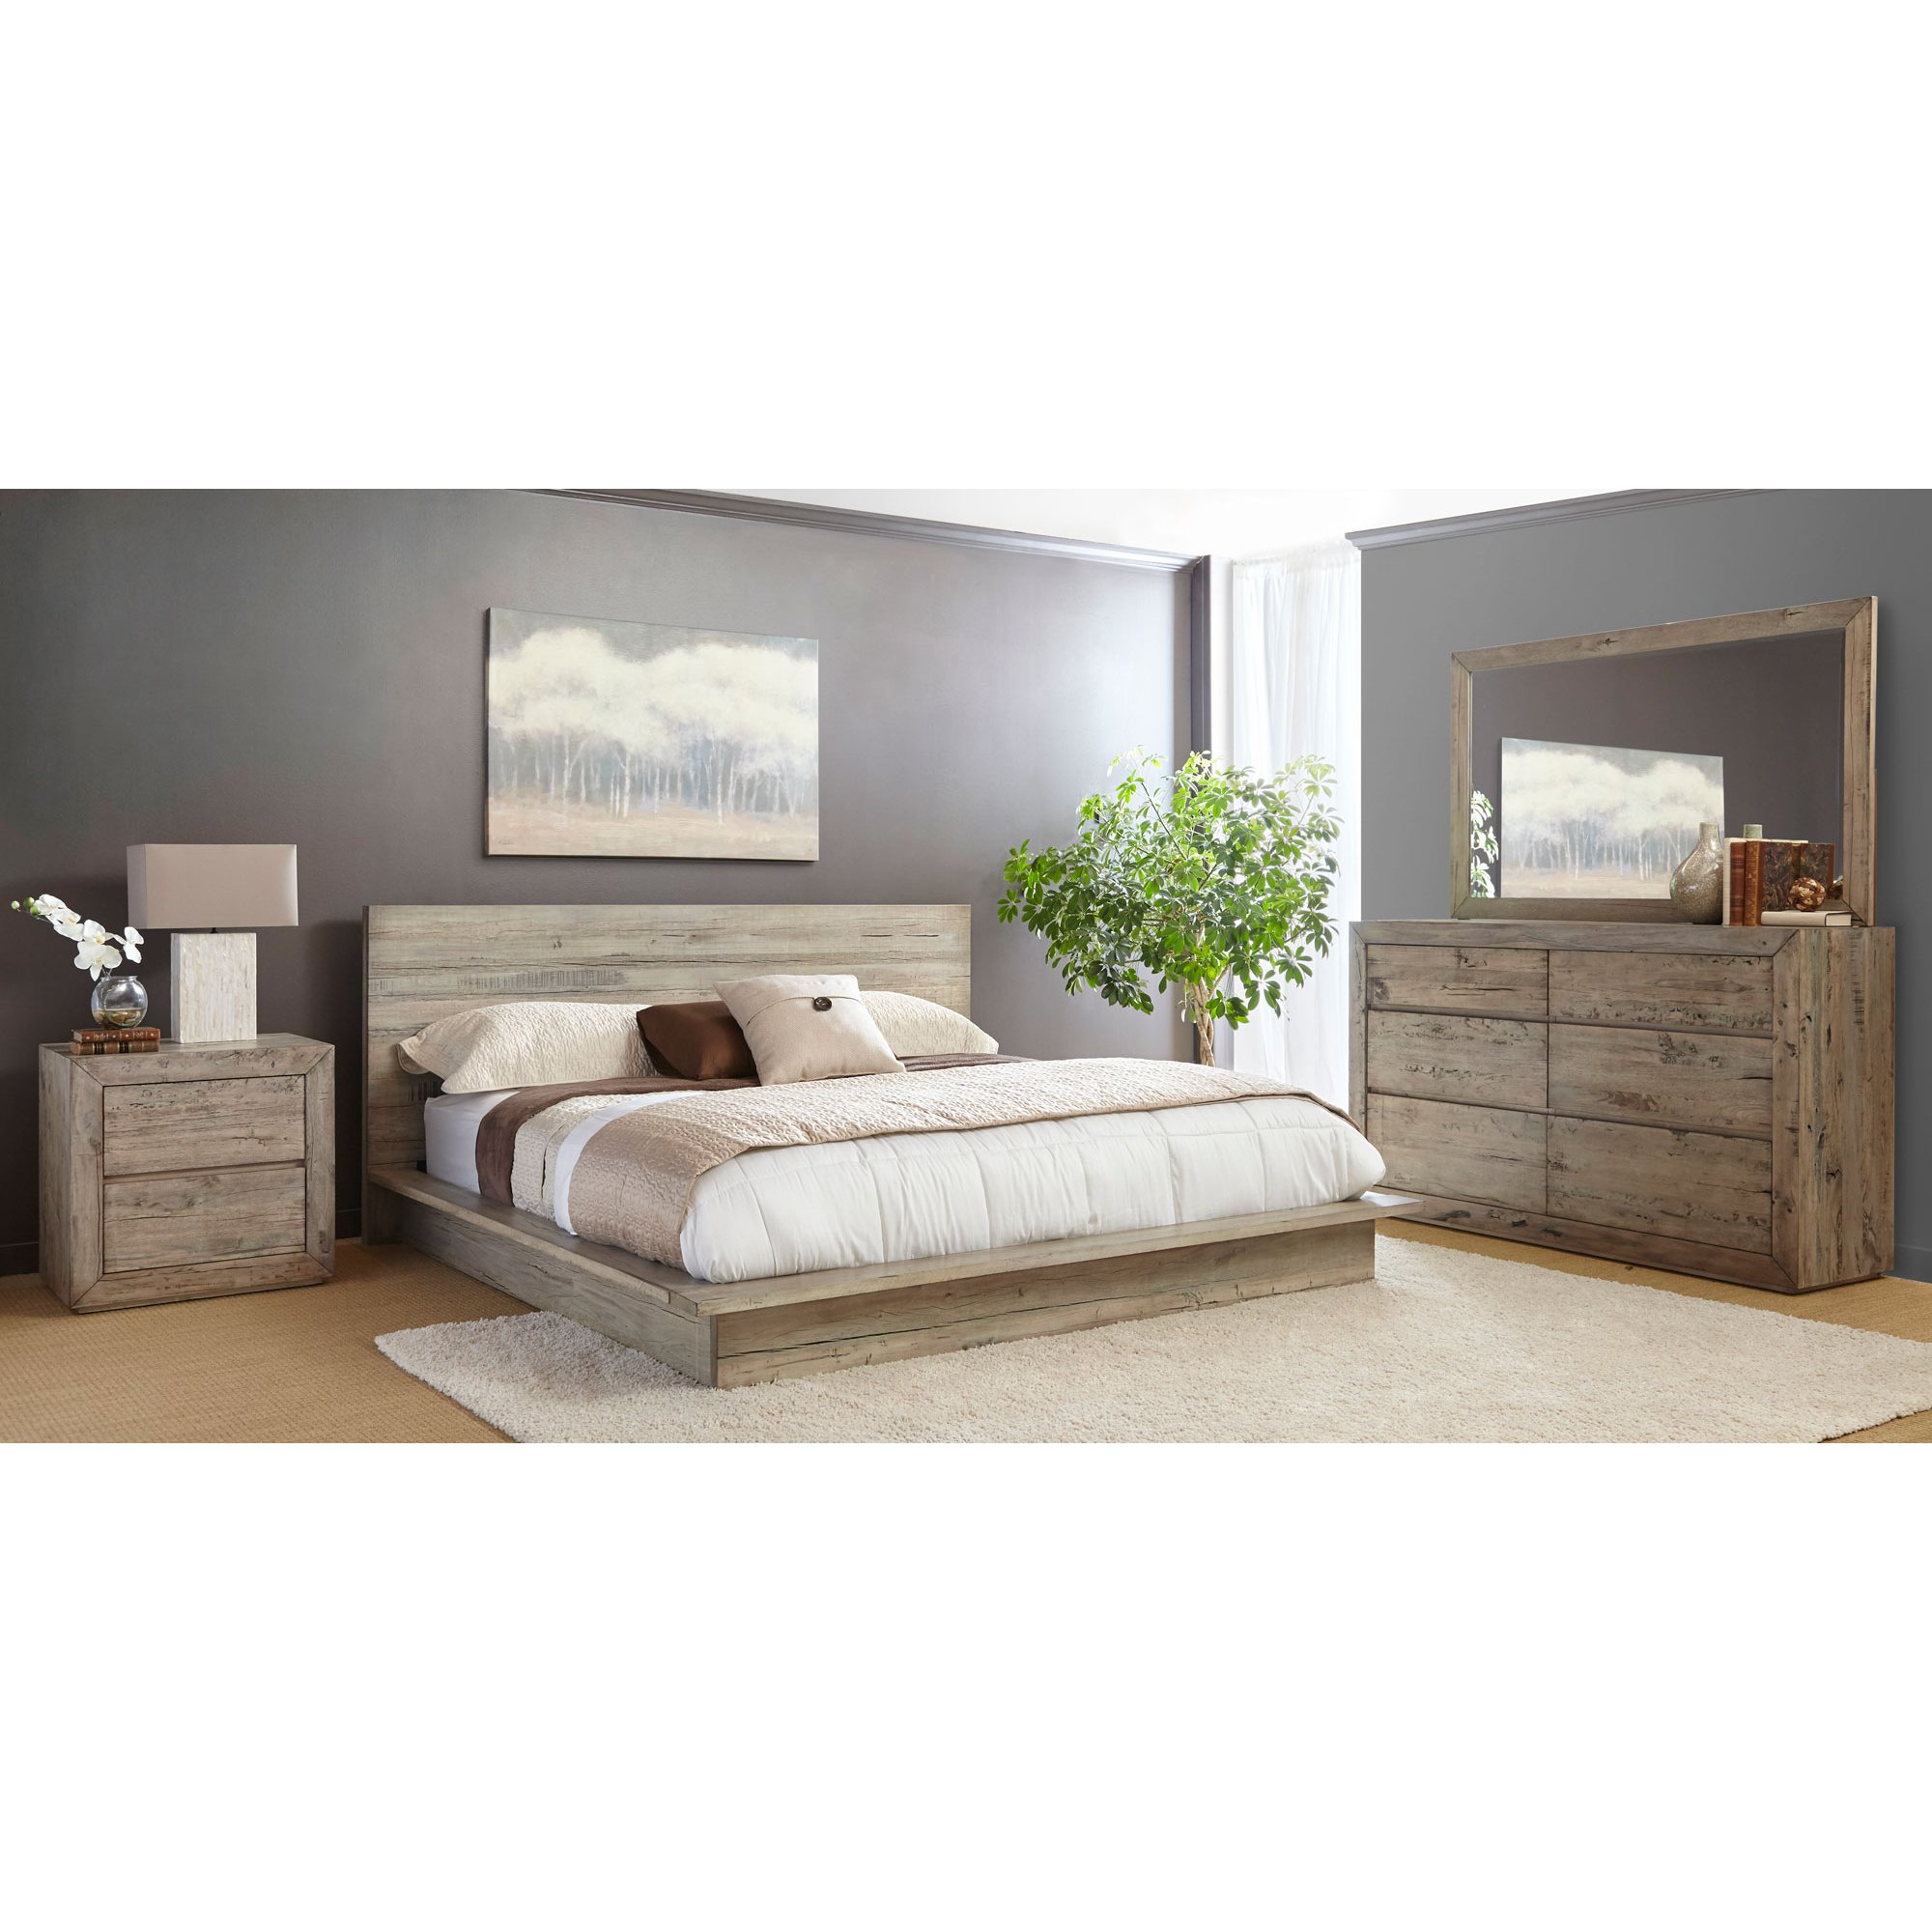 white rustic bedroom furniture.  White Washed Modern Rustic 6 Piece King Bedroom Set Renewal size bed king frame bedroom sets RC Willey